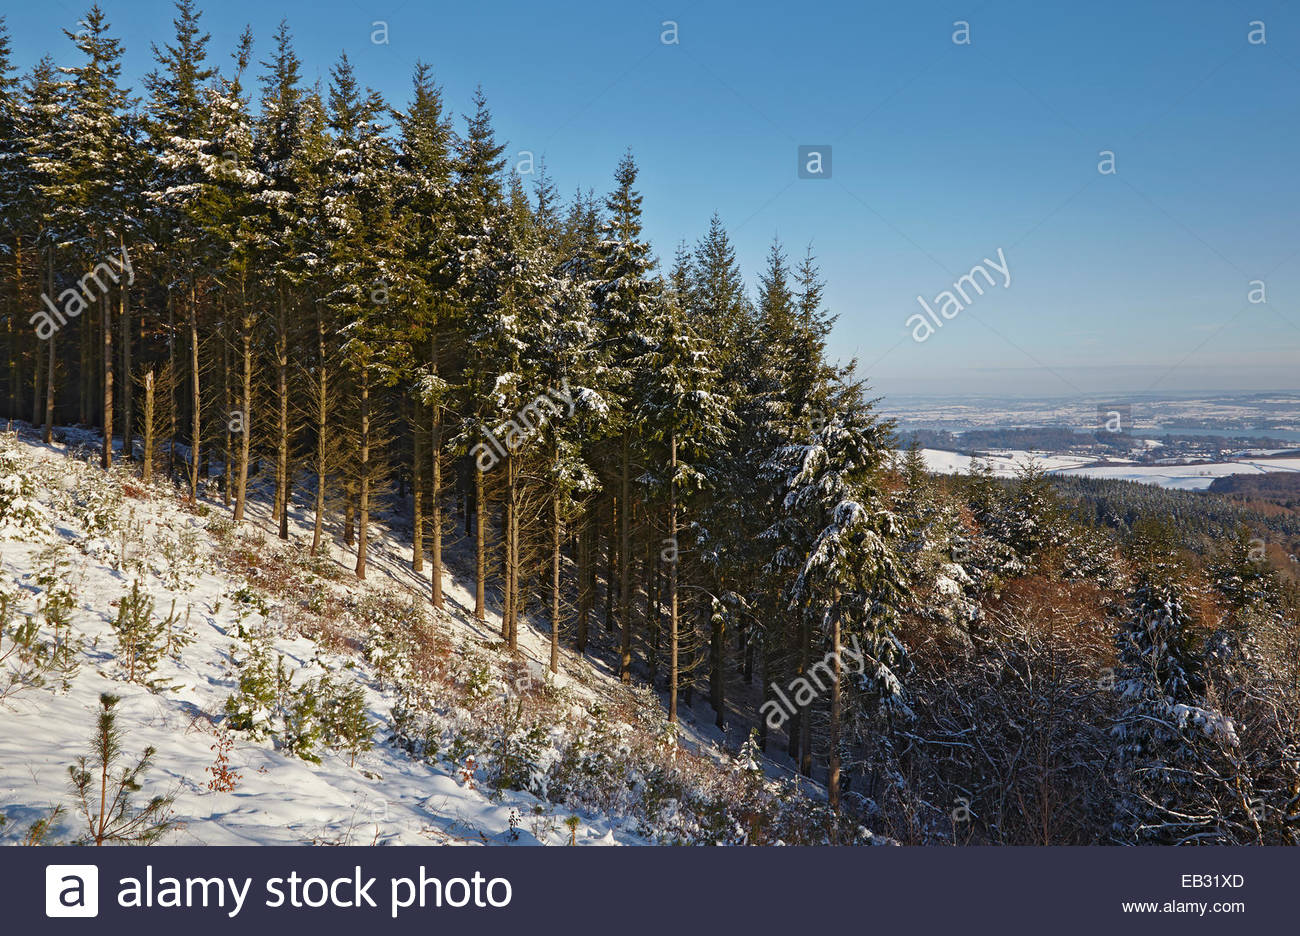 A conifer forest in deep snow, seen just before sunset, in the Haldon Hills near Exeter, Devon, Great Britain. - Stock Image